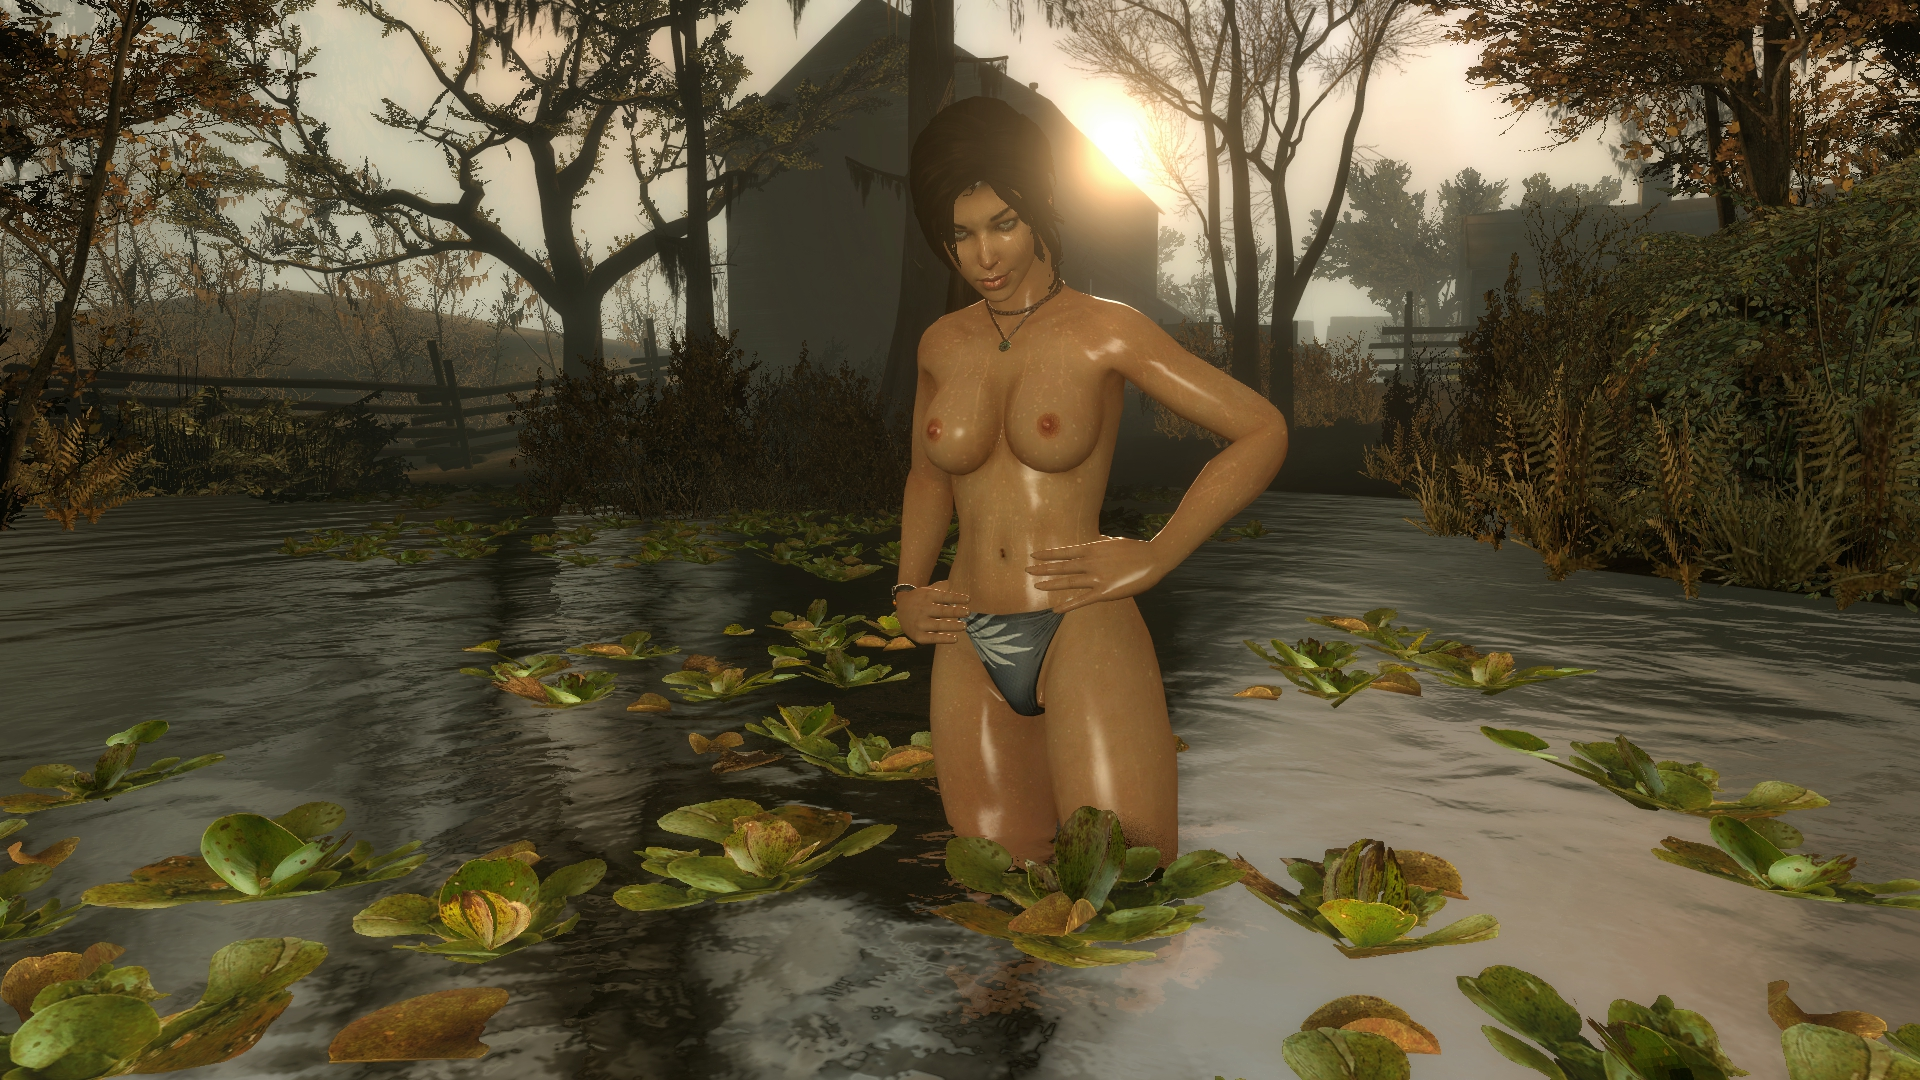 Tomb raider game character nude smut videos